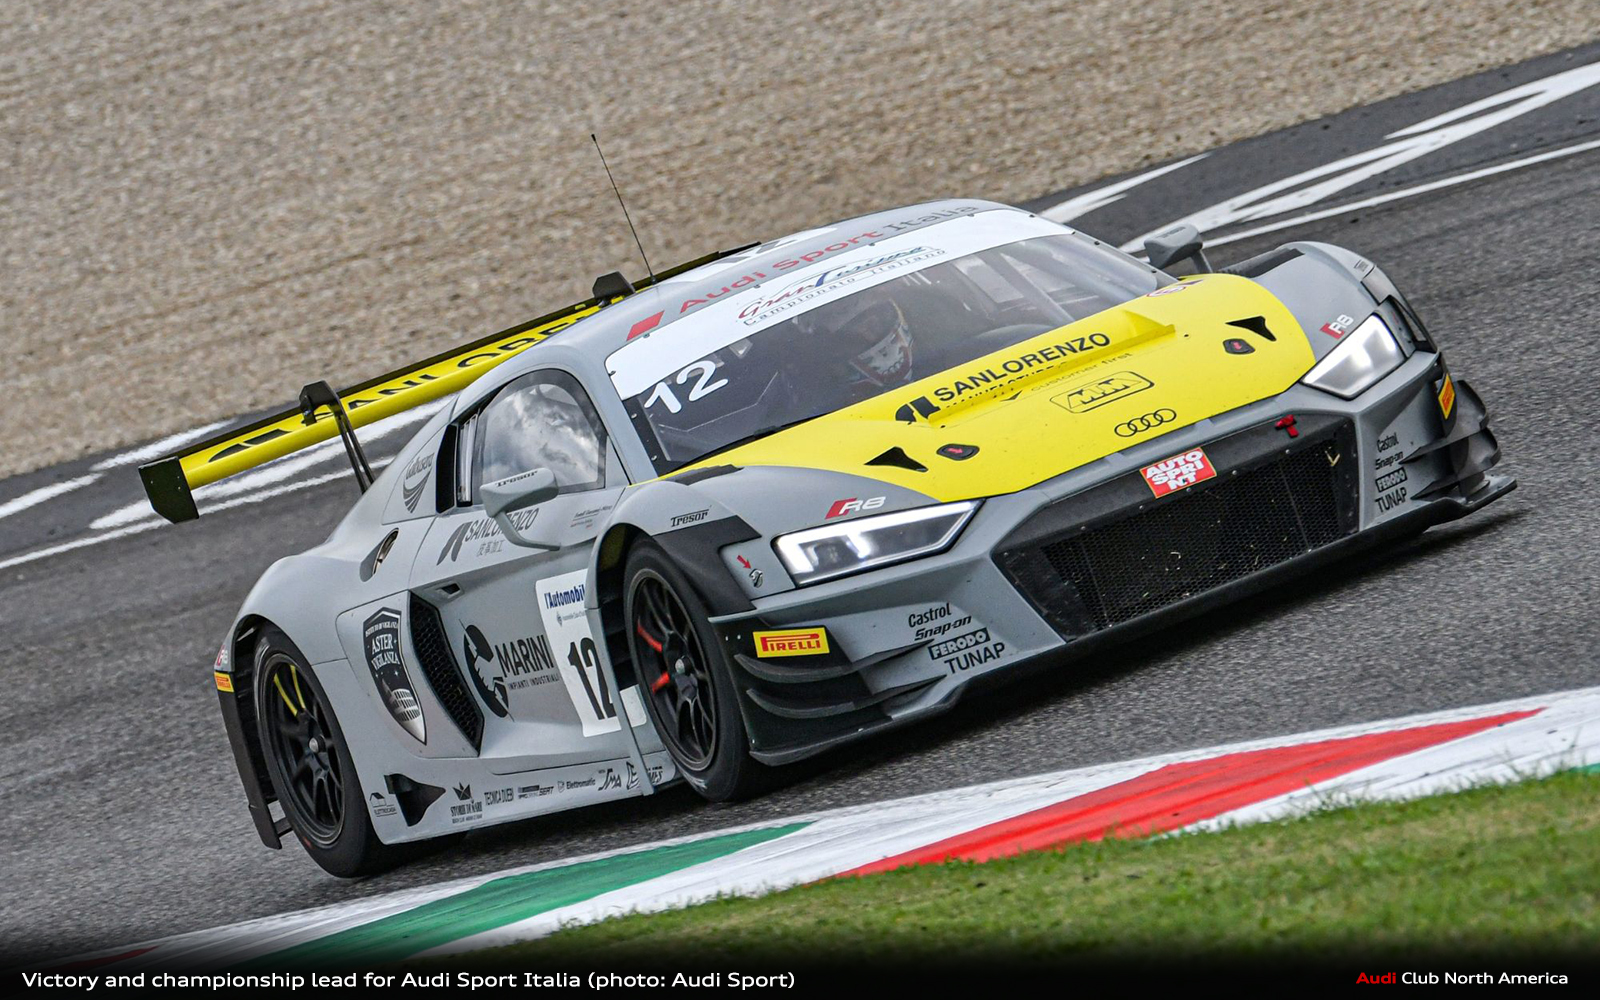 Victory and Championship Lead for Audi Sport Italia